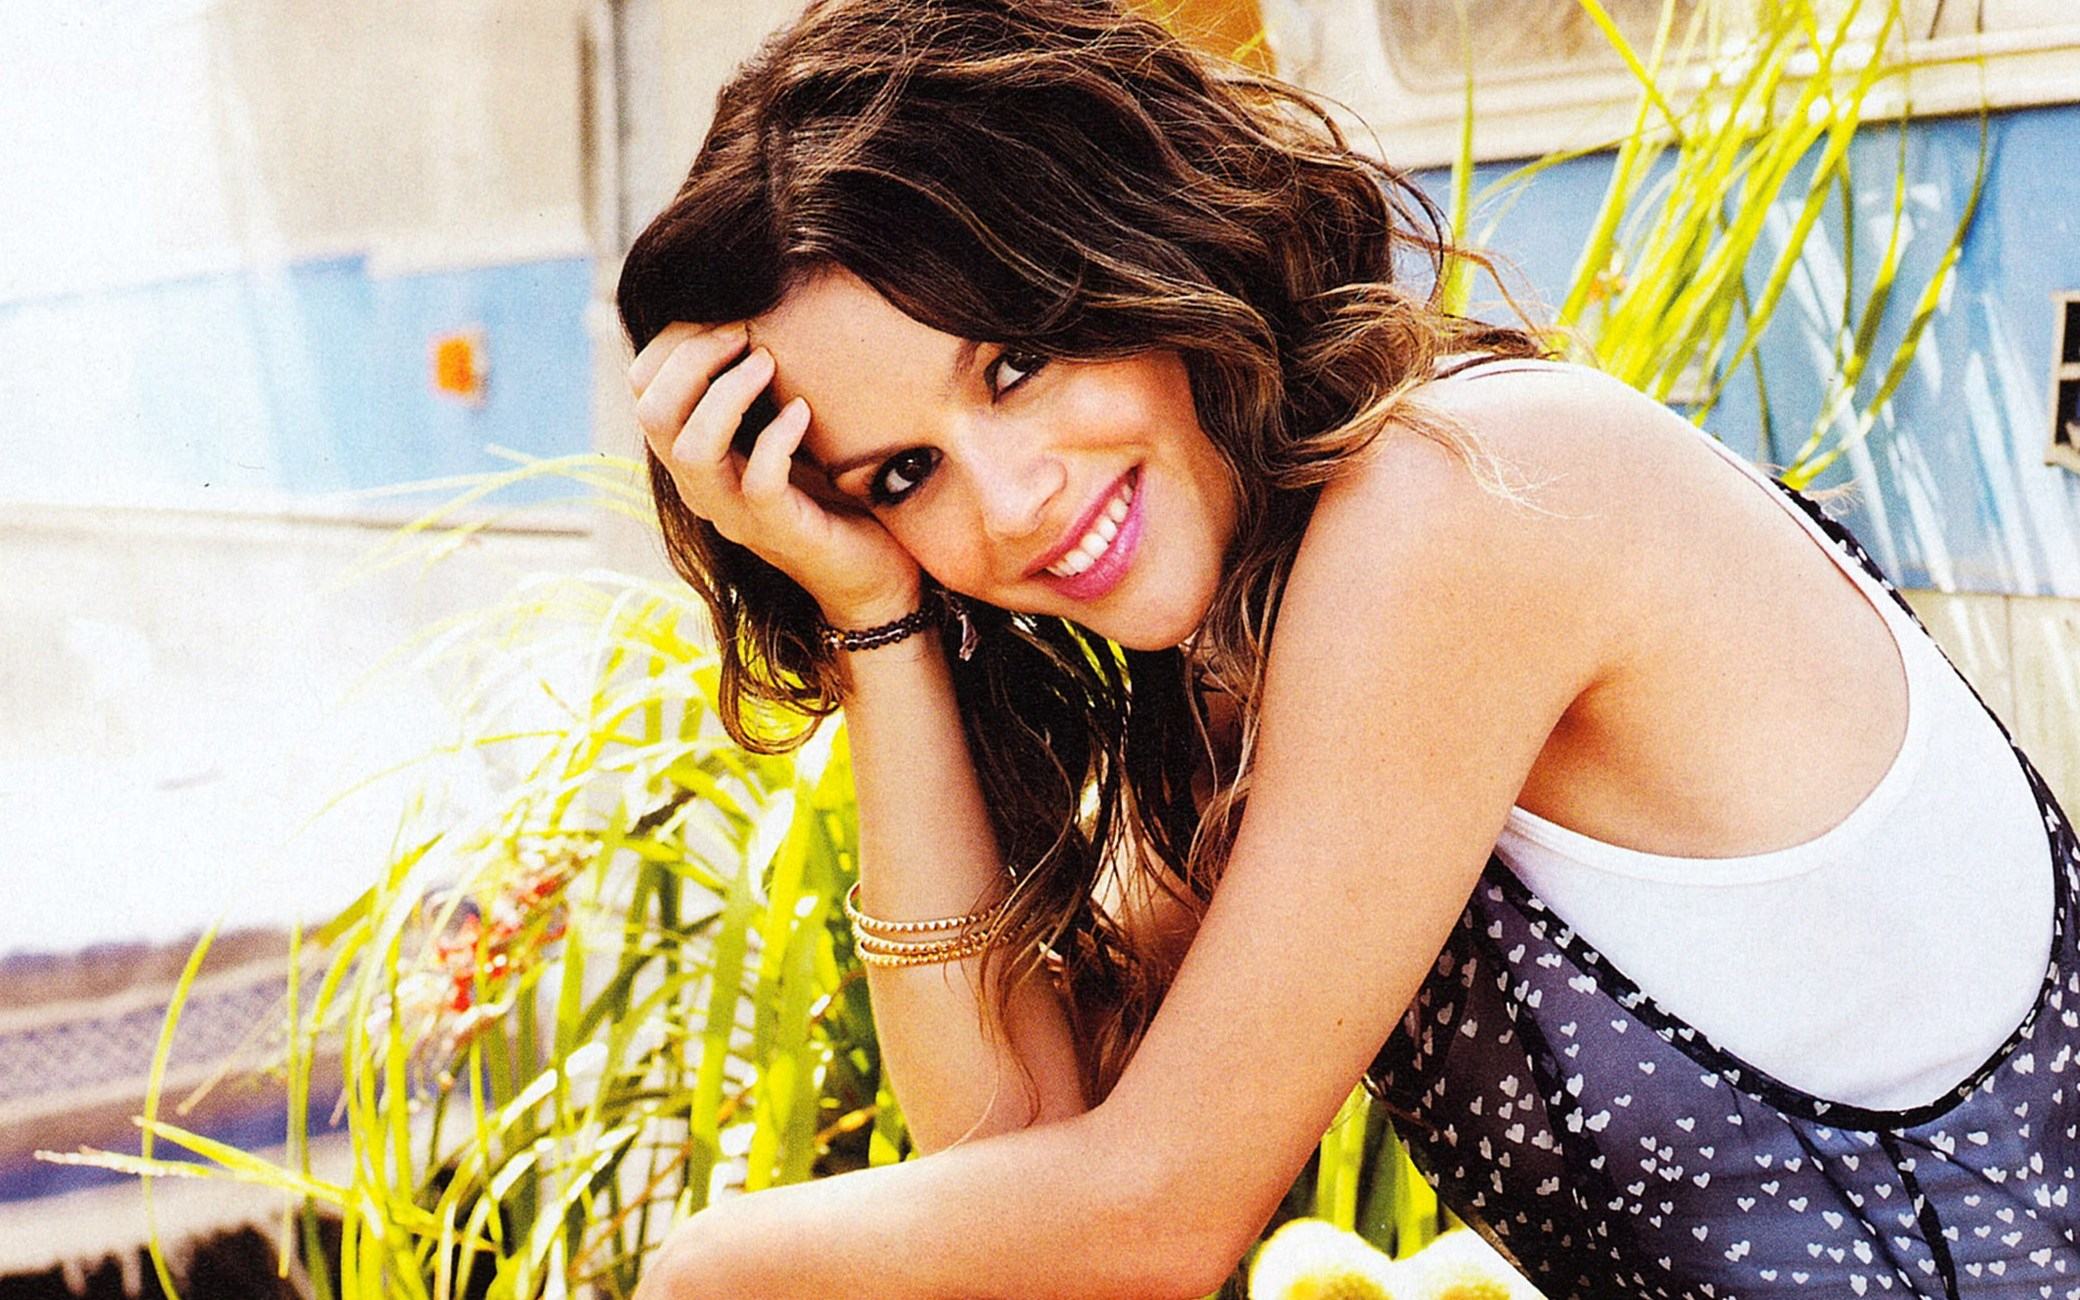 Rachel Bilson Wallpapers High Resolution And Quality Download